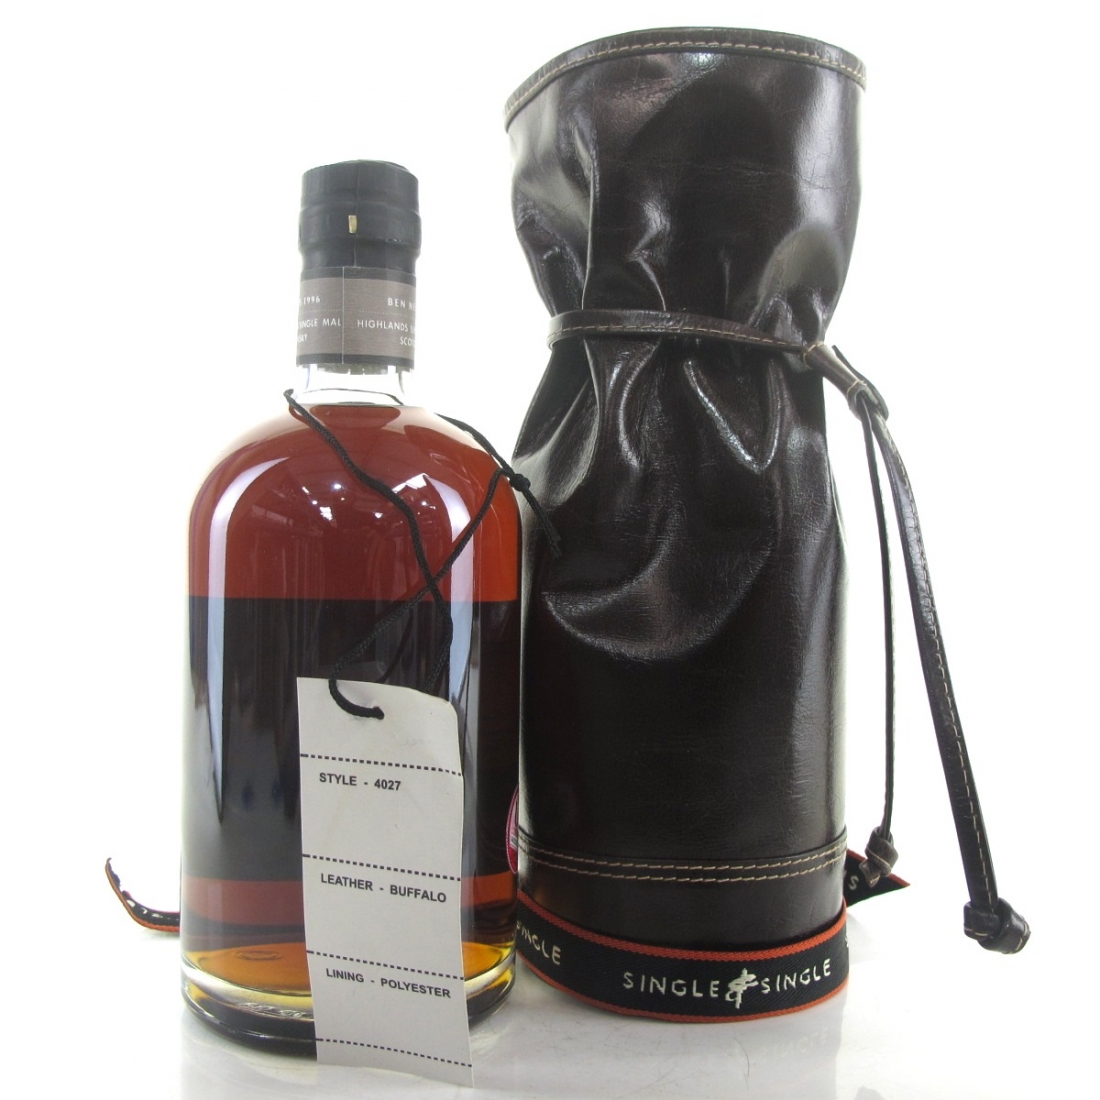 Ben Nevis 1996 Single and Single 21 Year Old 75cl